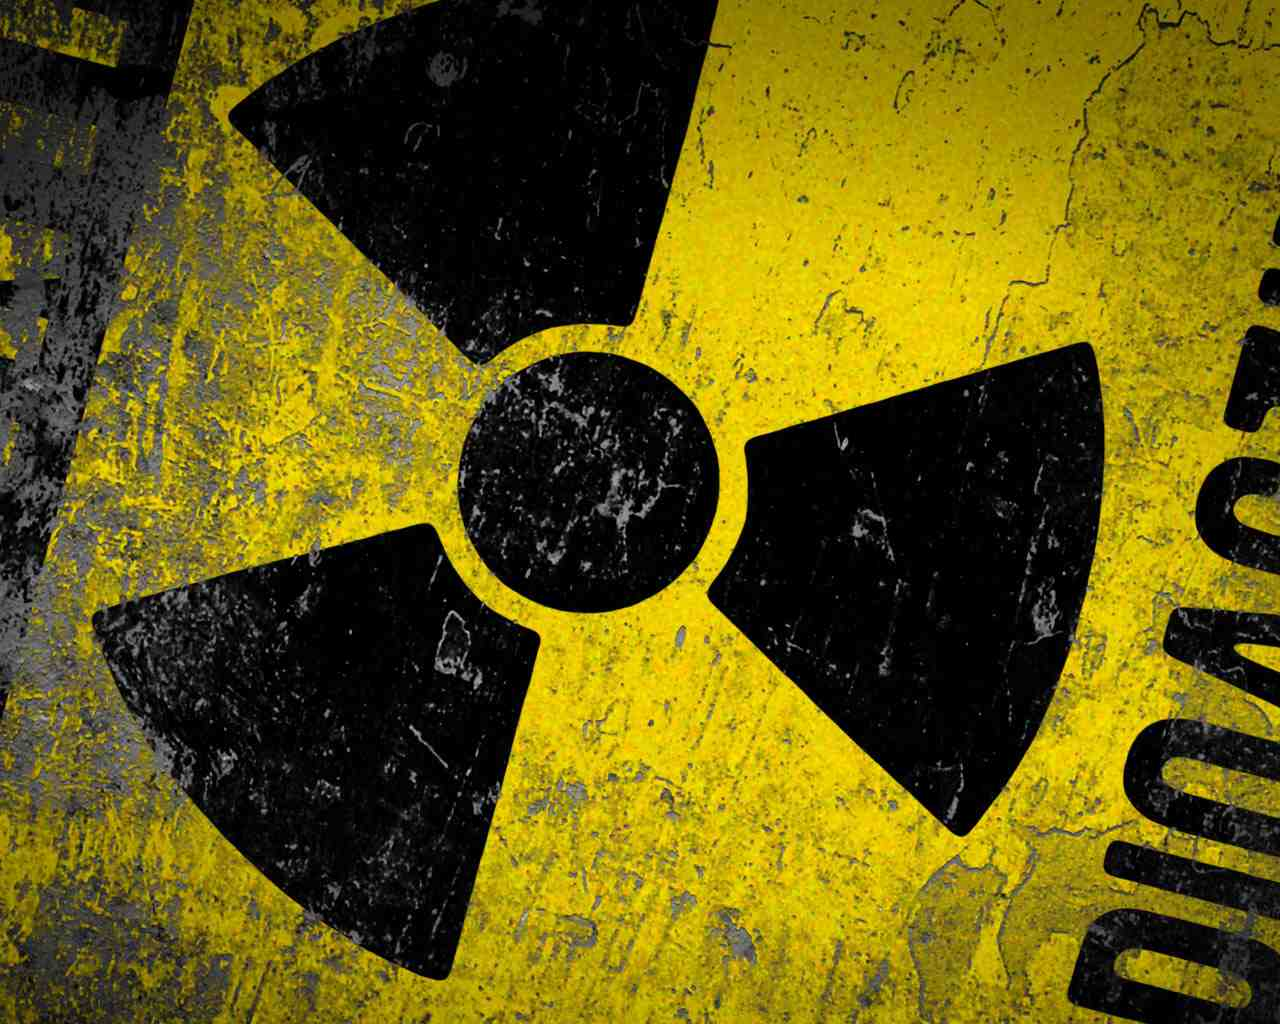 1280x1024 > Radioactive Wallpapers